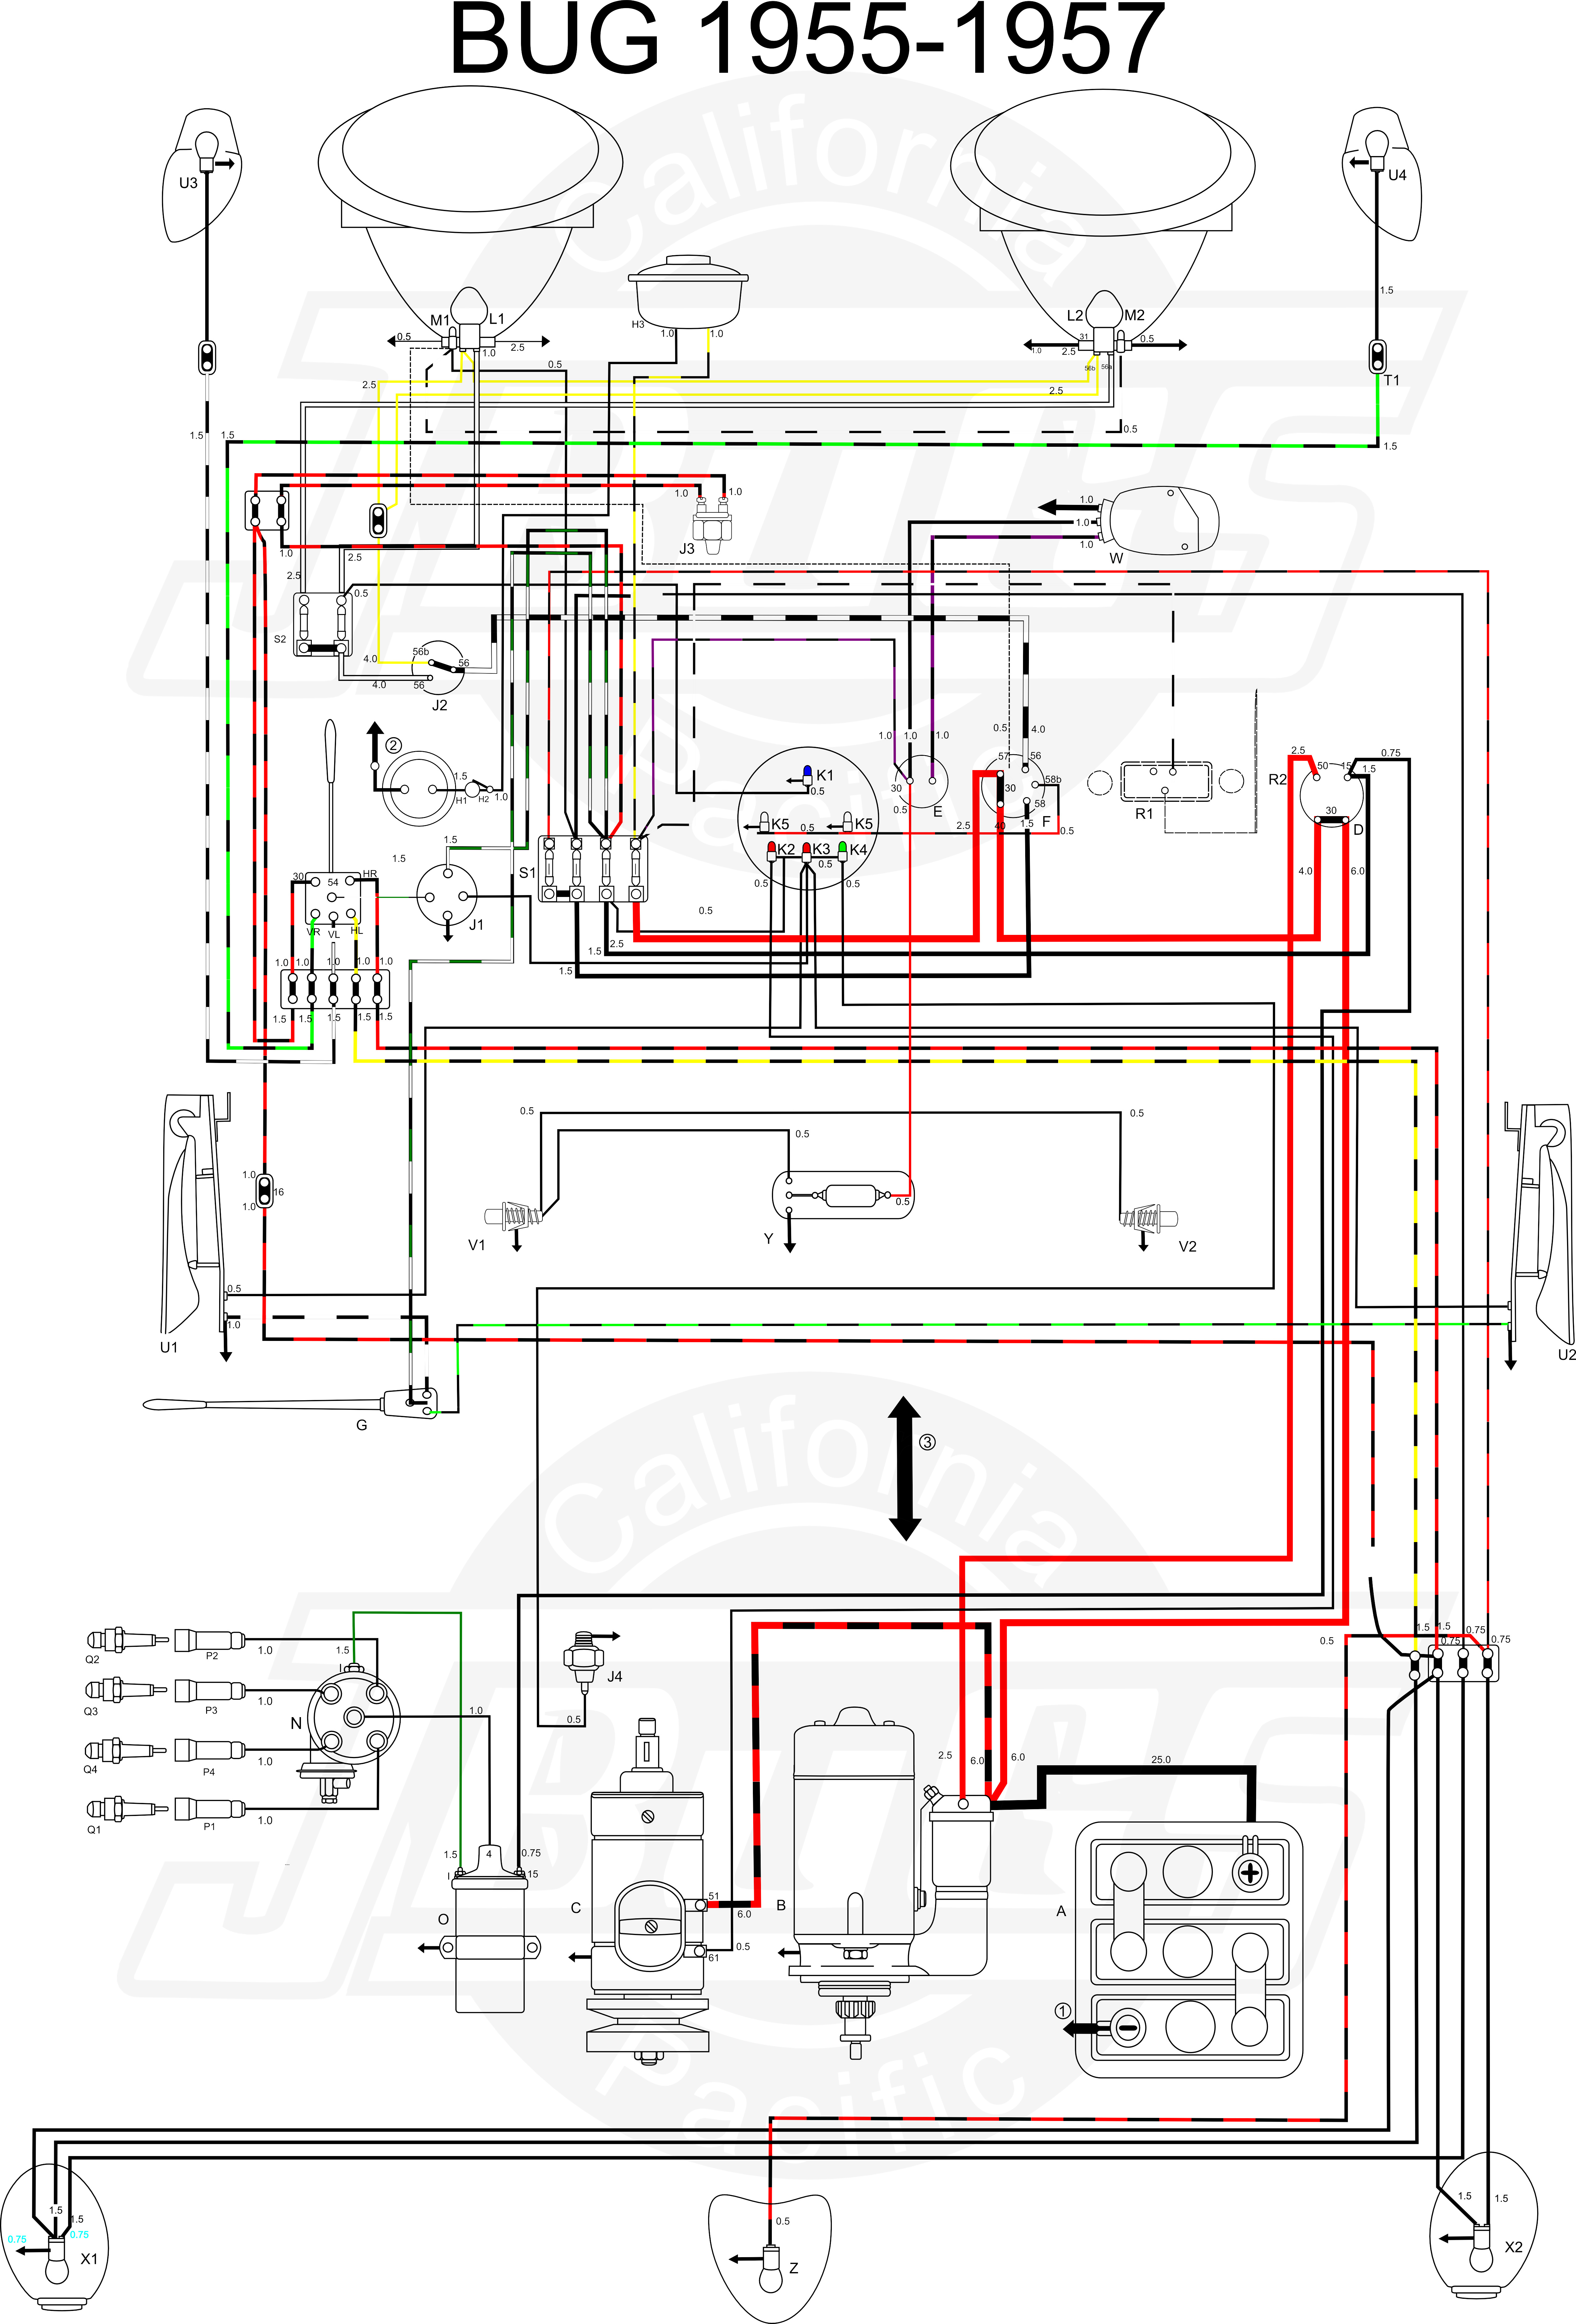 1995 Pontiac Firebird Fuse Box Diagram Wiring Library Bonneville Panel Worksheet And Rh Bookinc Co